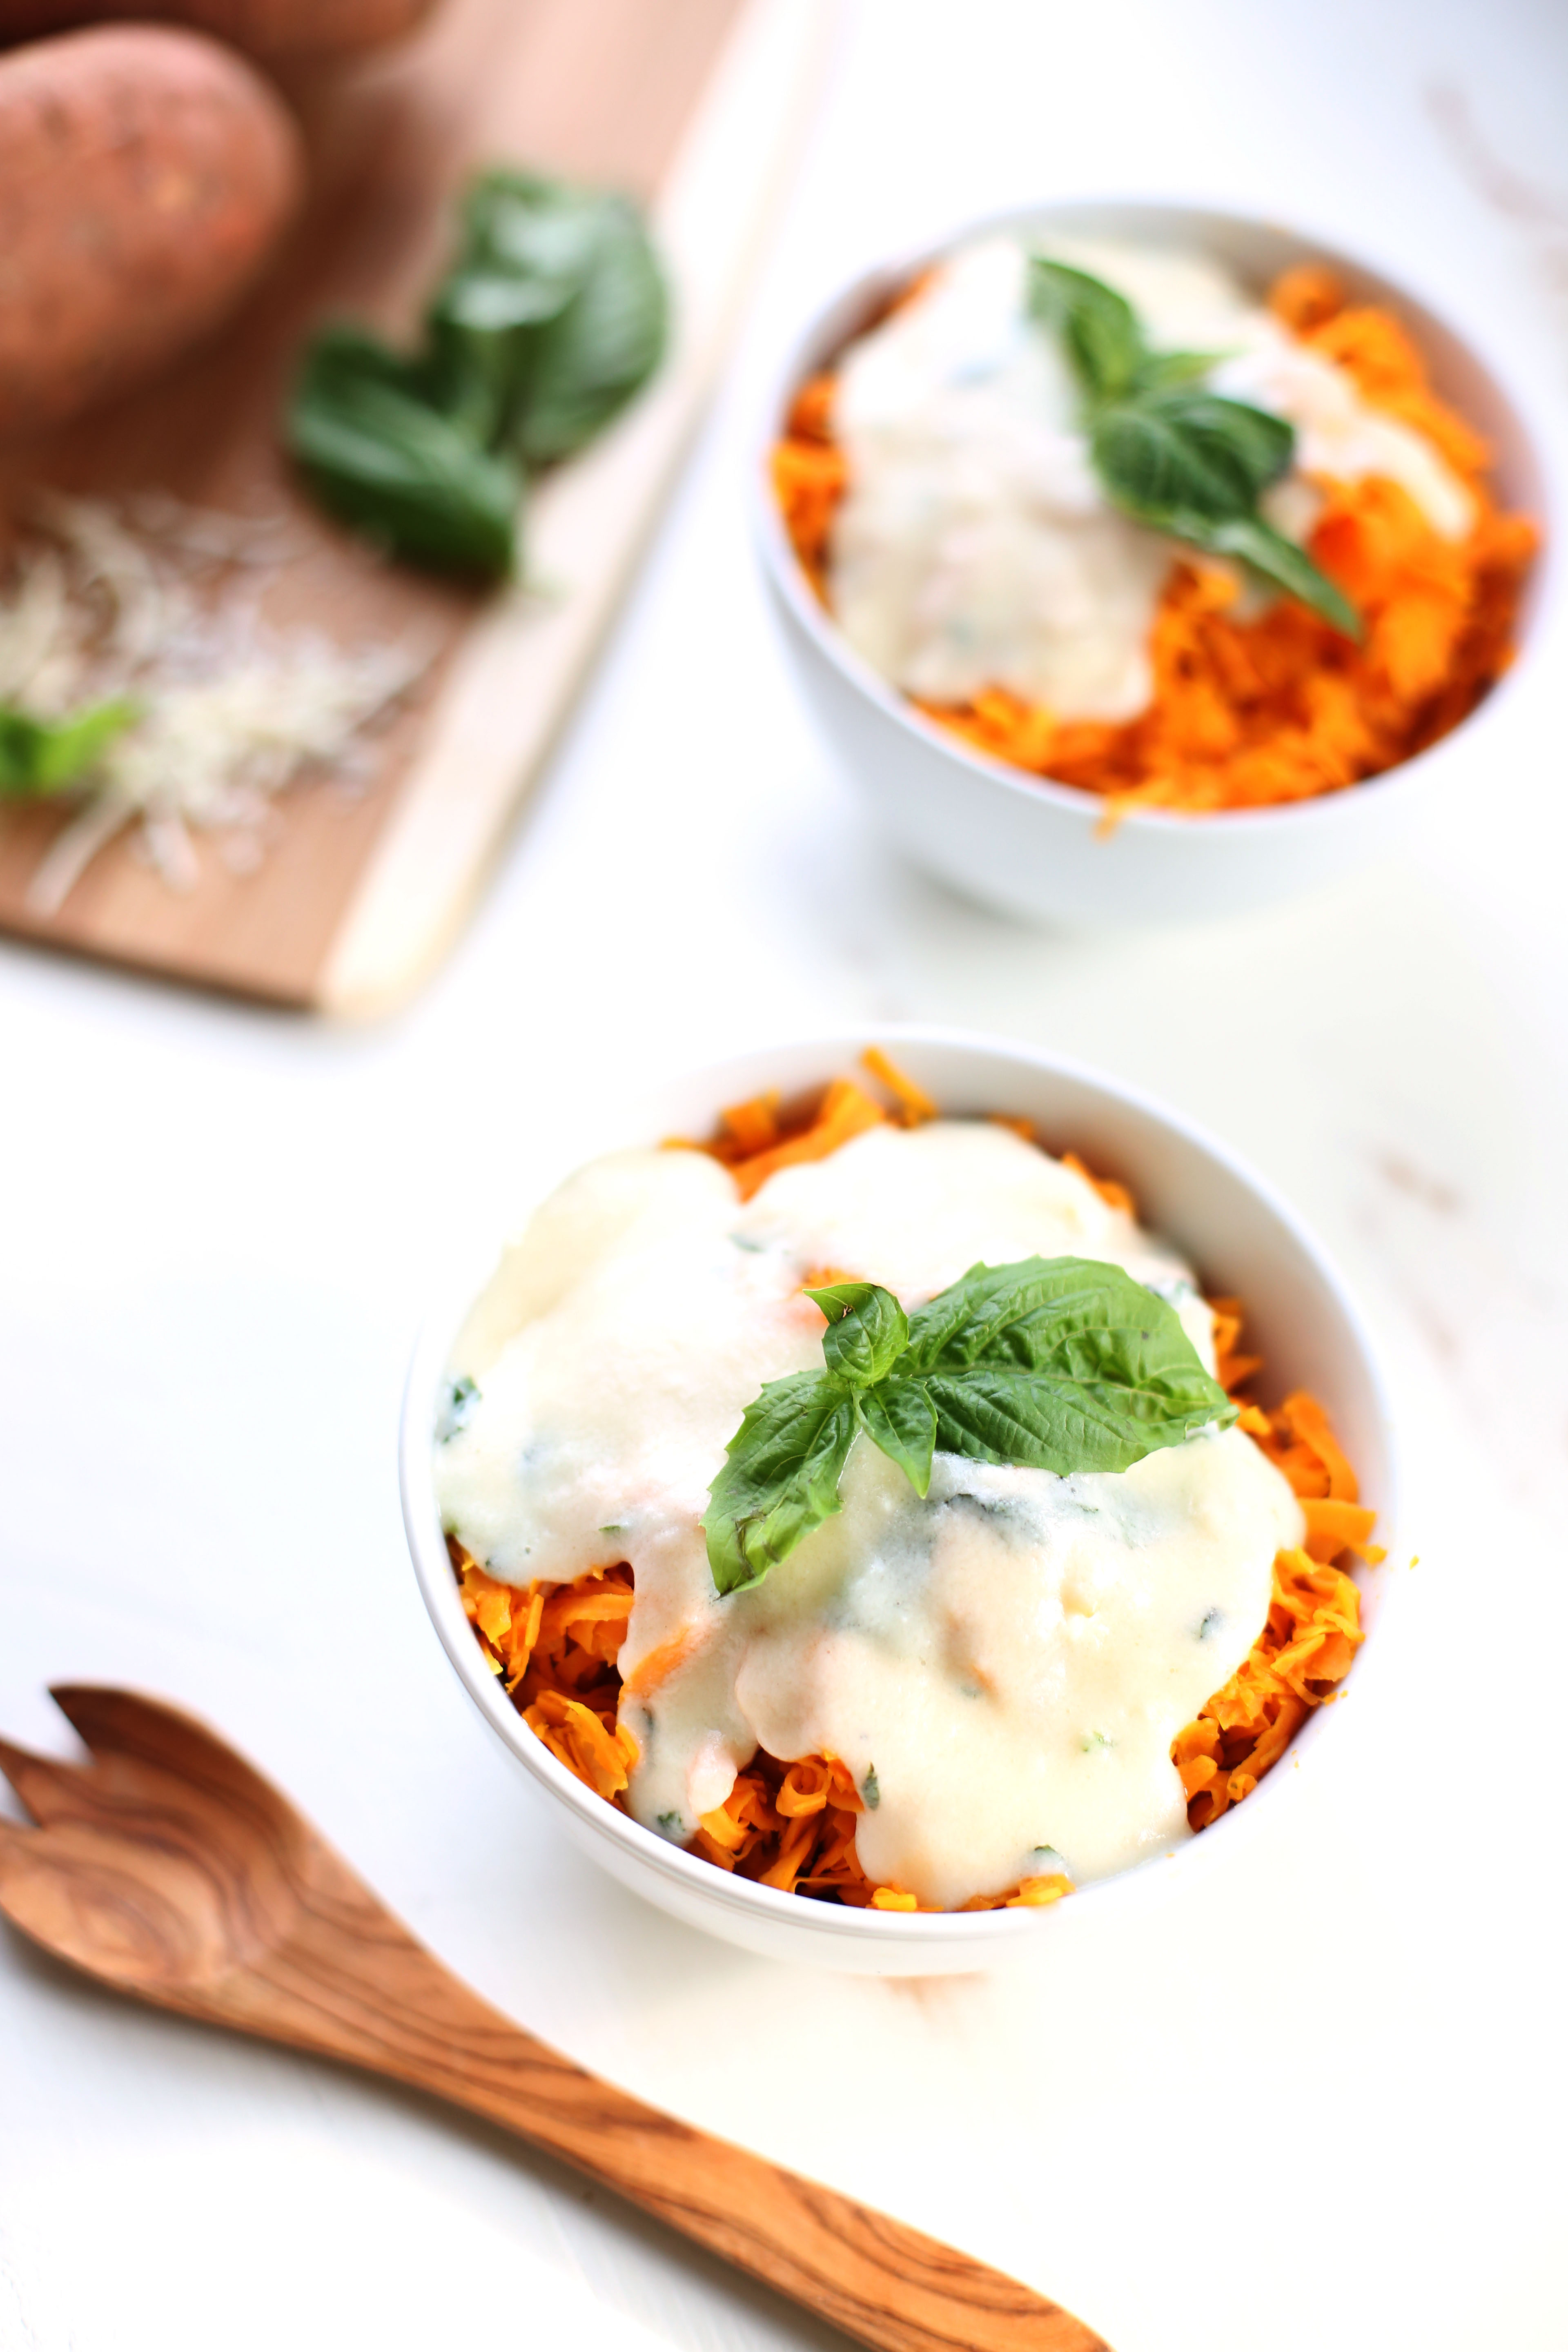 These Sweet Potato Noodles with Basil Cheese Sauce are an adult twist on a childhood favorite: mac & cheese.